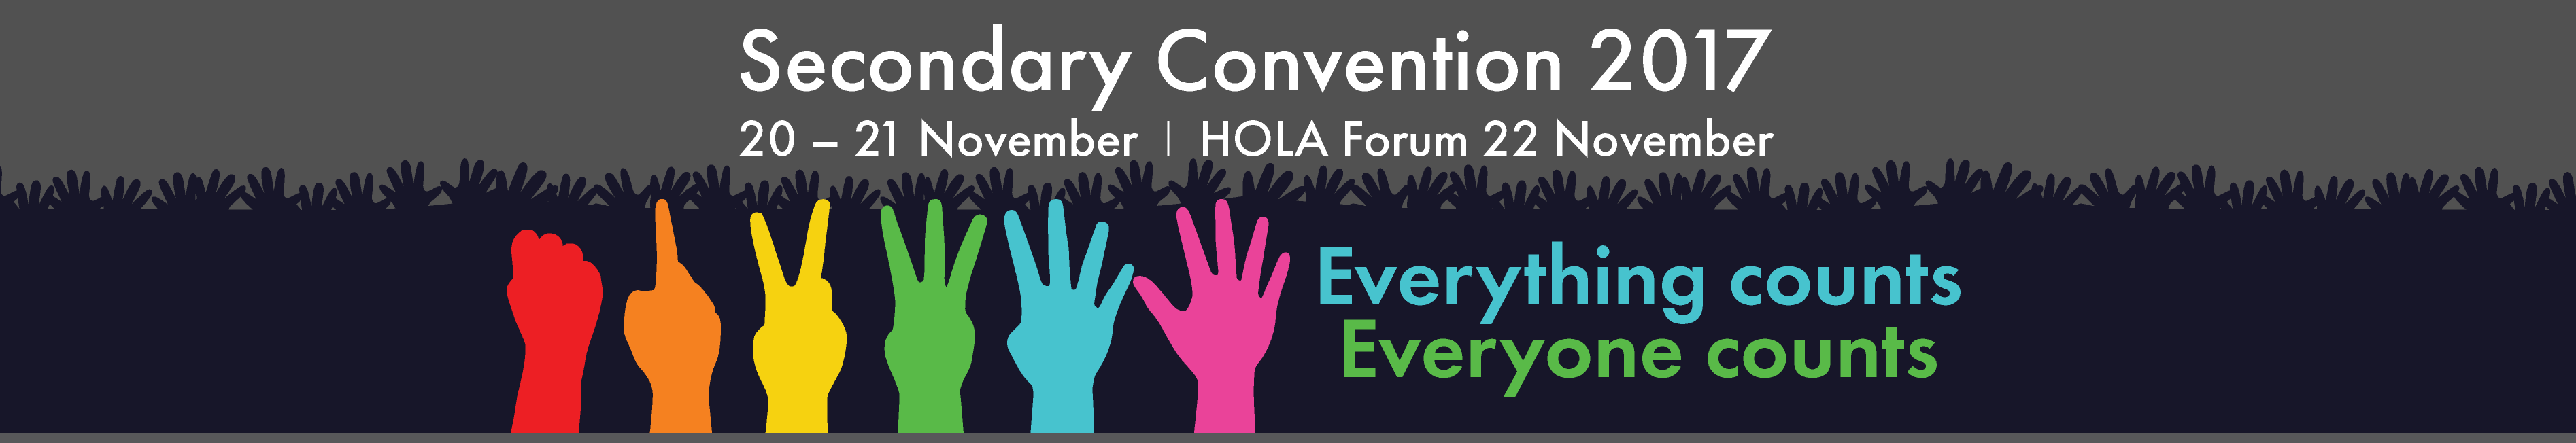 Secondary-Convention-2017-Web-Banner